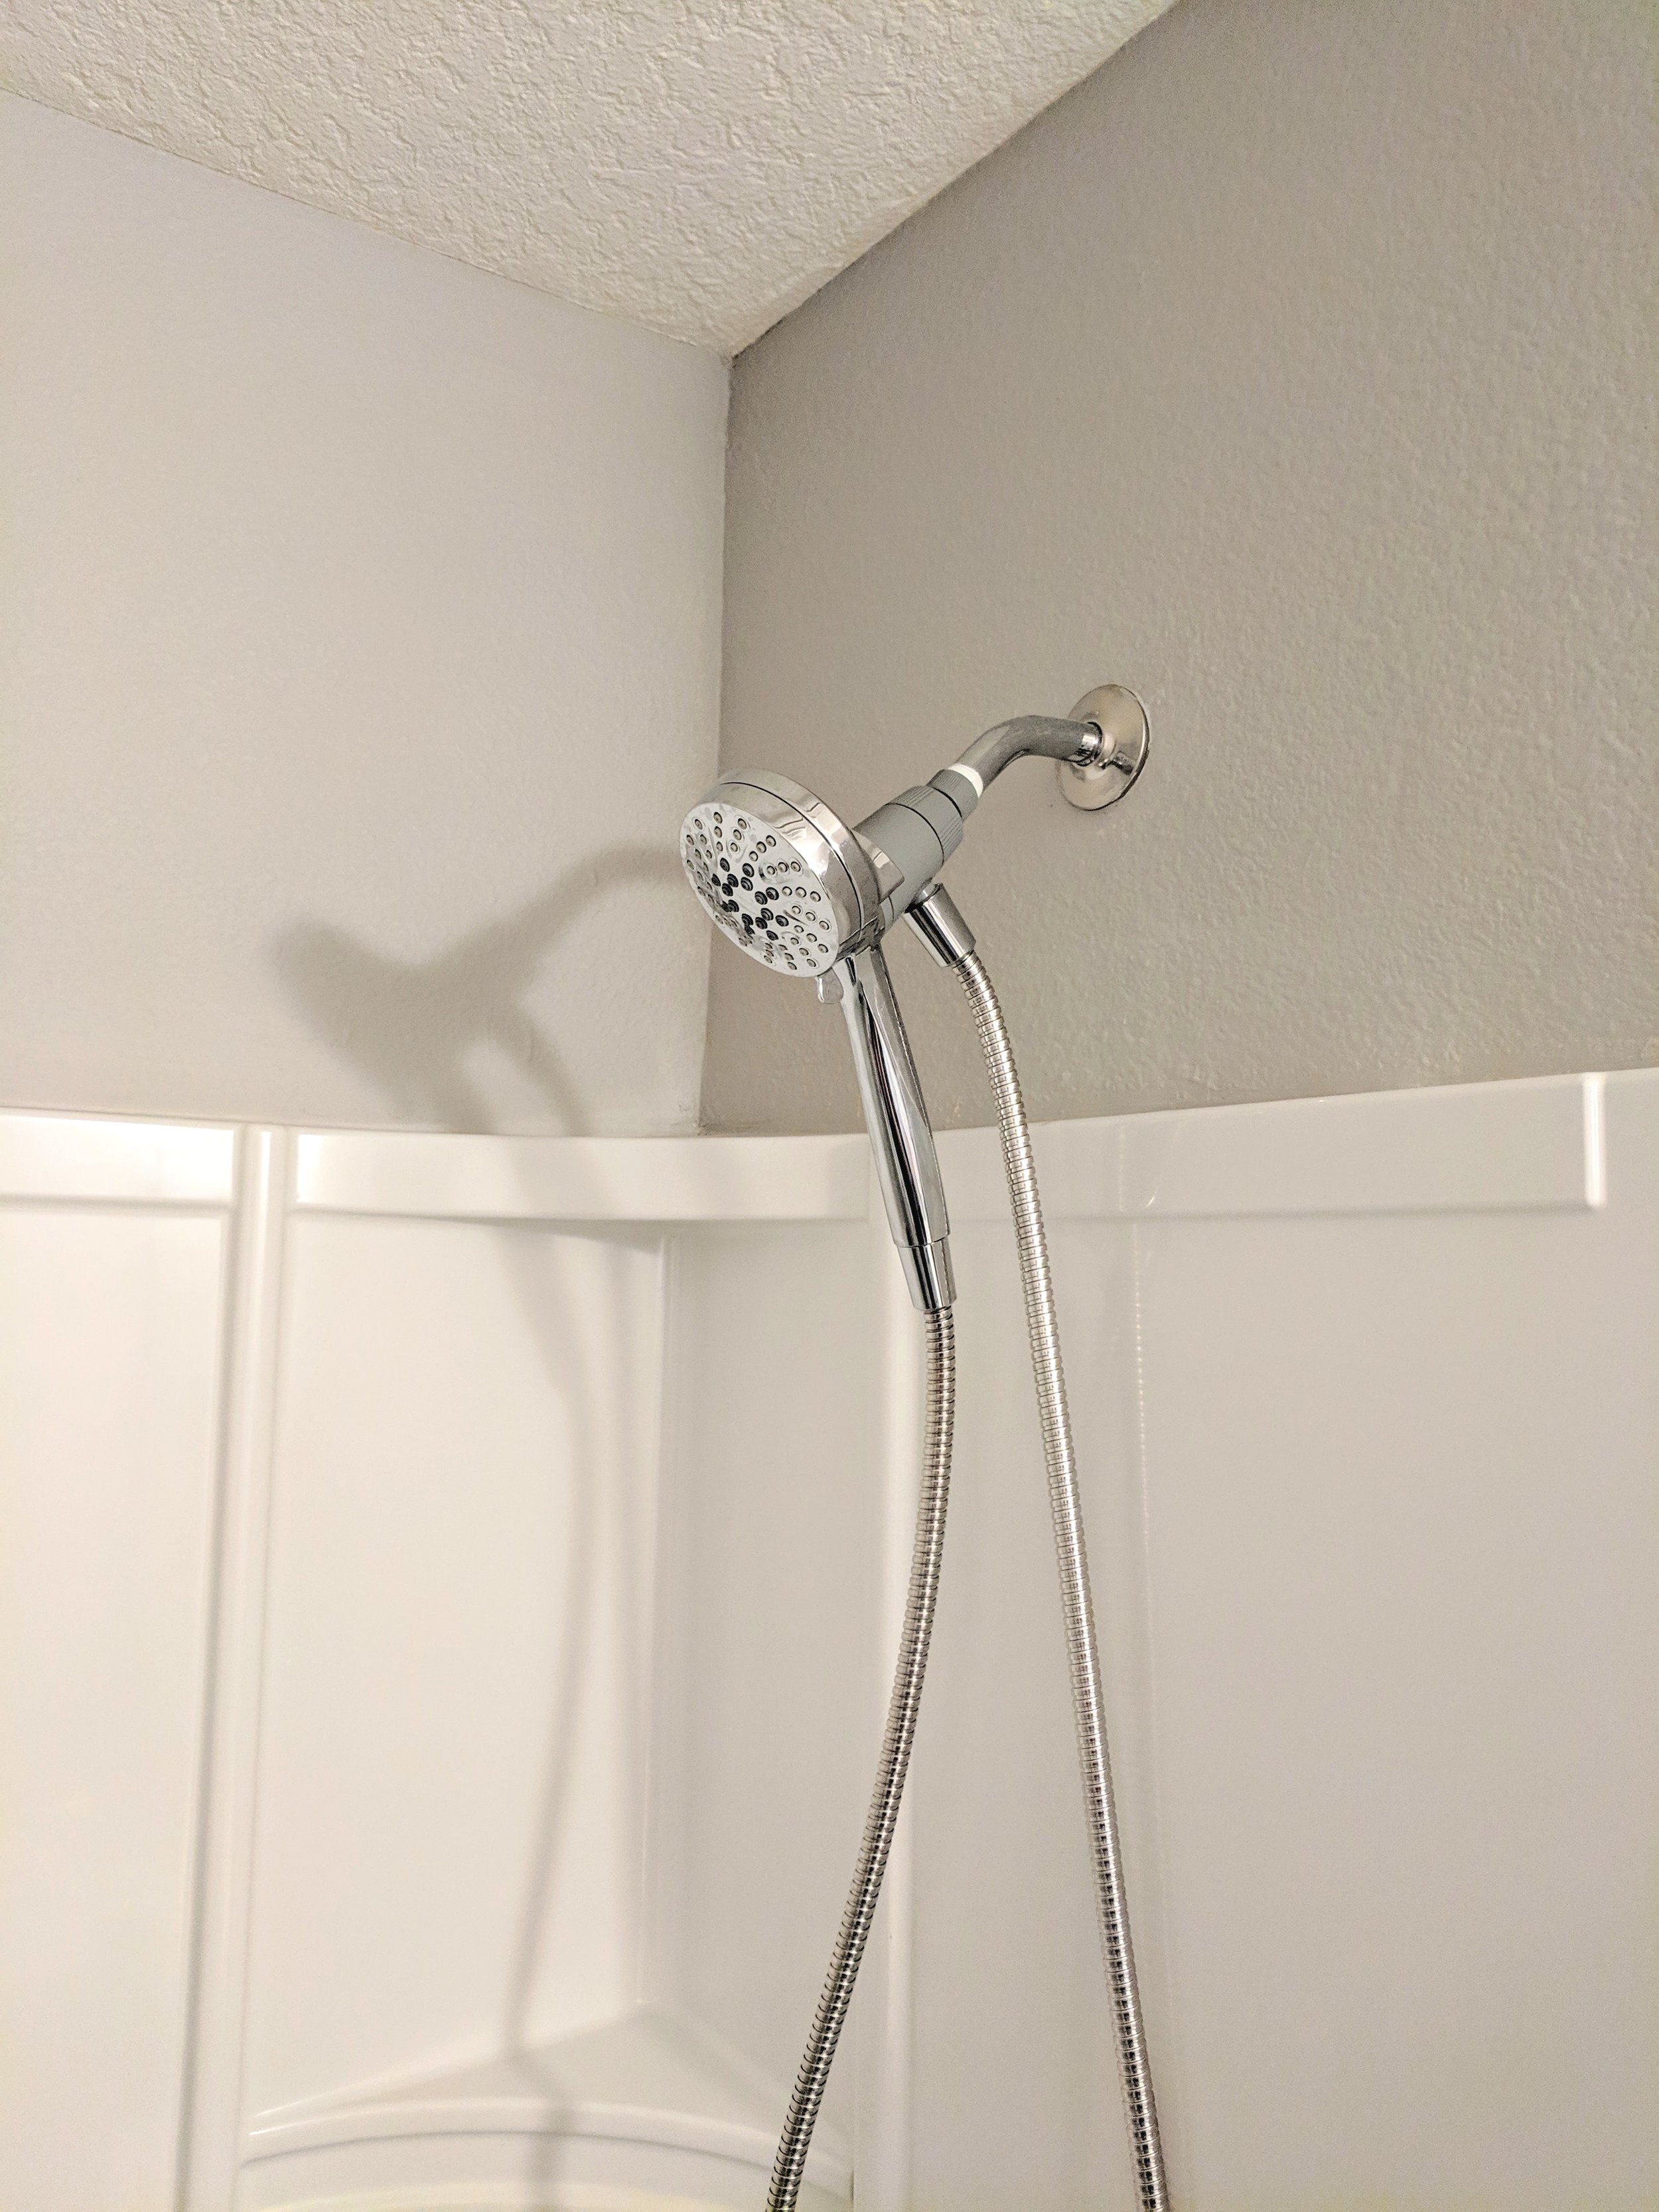 Enjoy your new shower head!